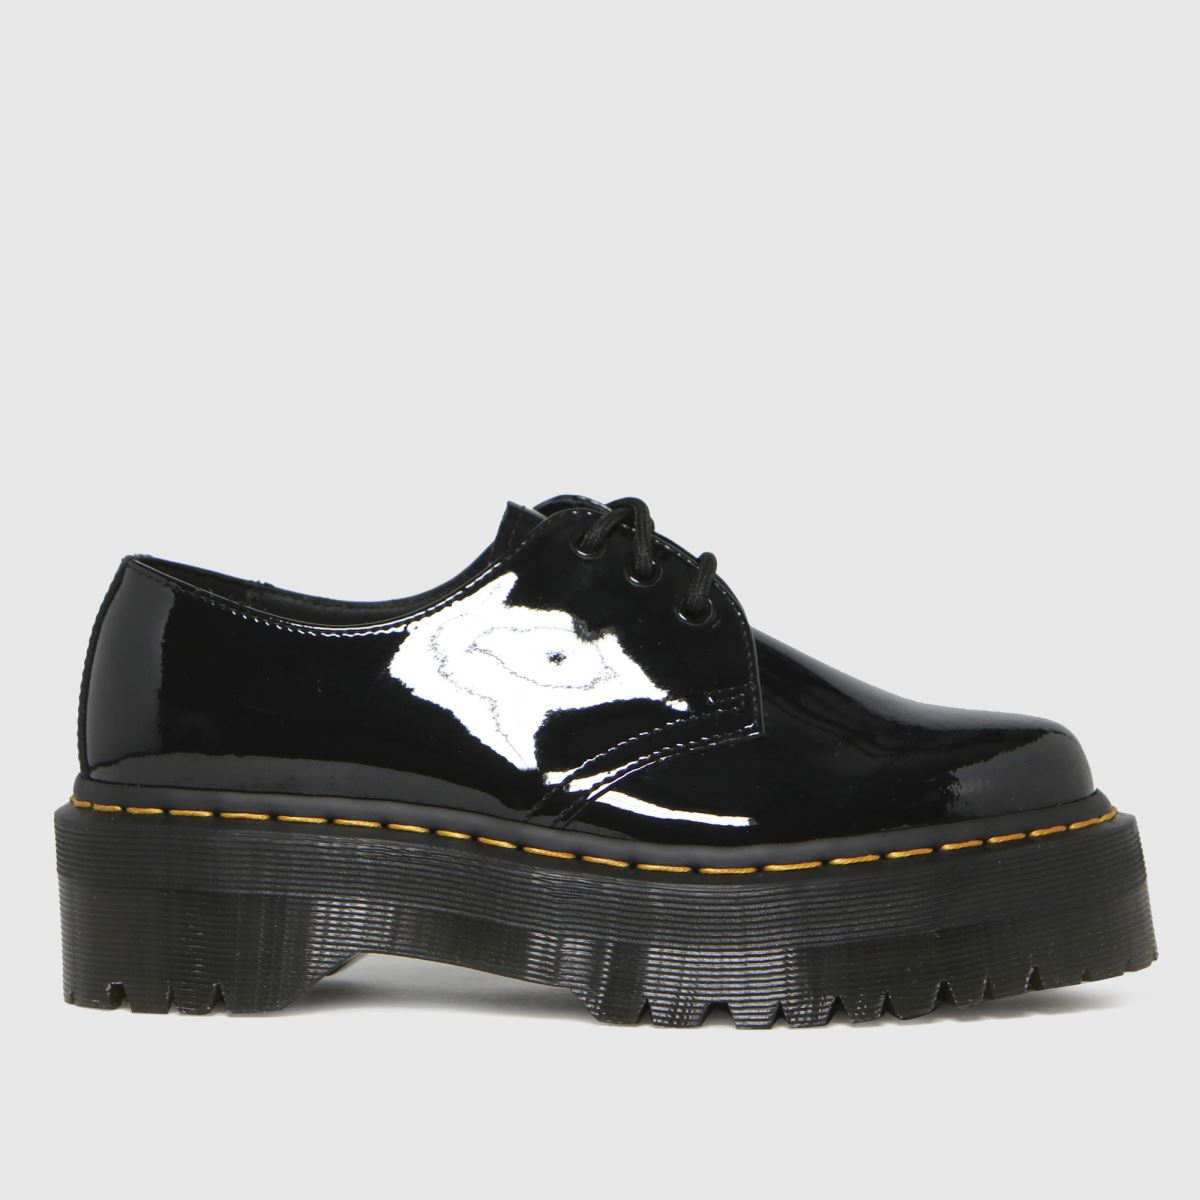 Dr Martens Black 1461 Quad Flat Shoes